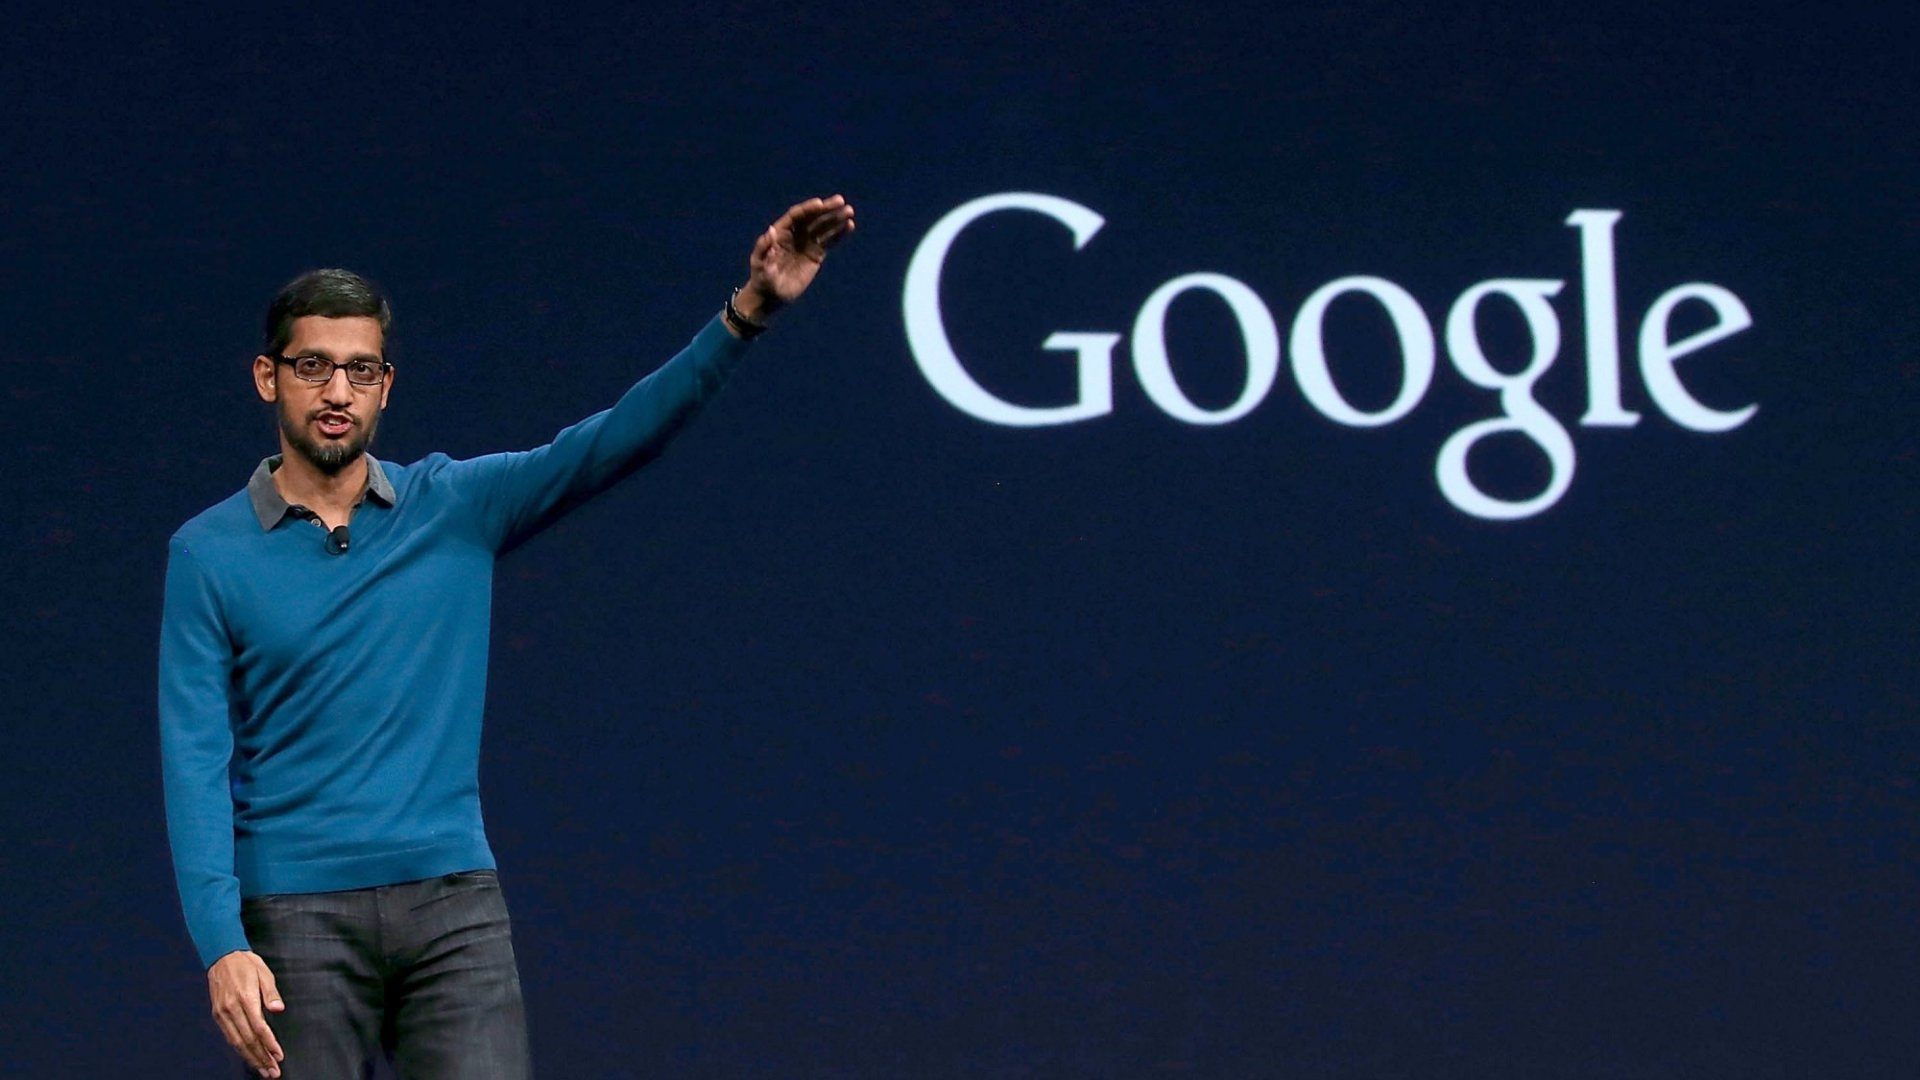 Google Just Admitted It's Been Making This 1 Astonishing Mistake for Literally 14 Years